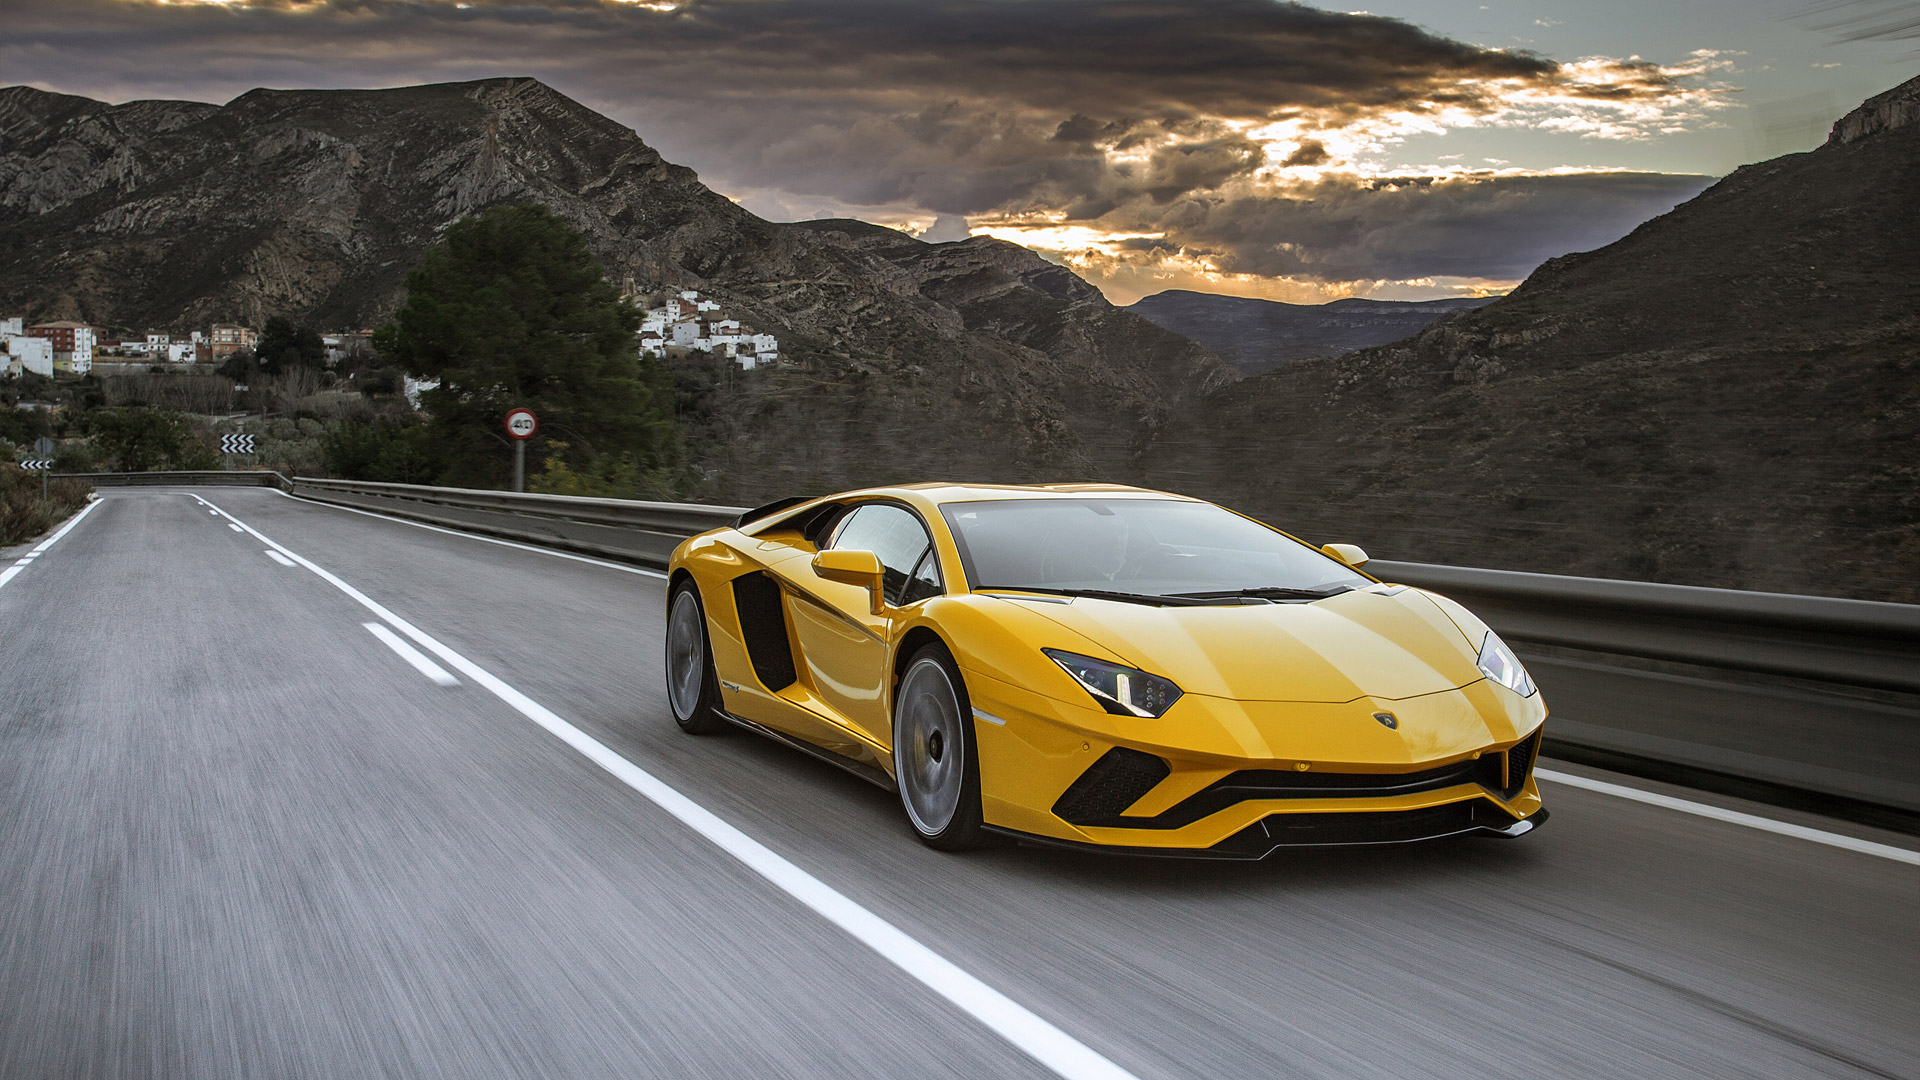 2017 Lamborghini Aventador S Wallpapers HD Images   WSupercars 1920x1080